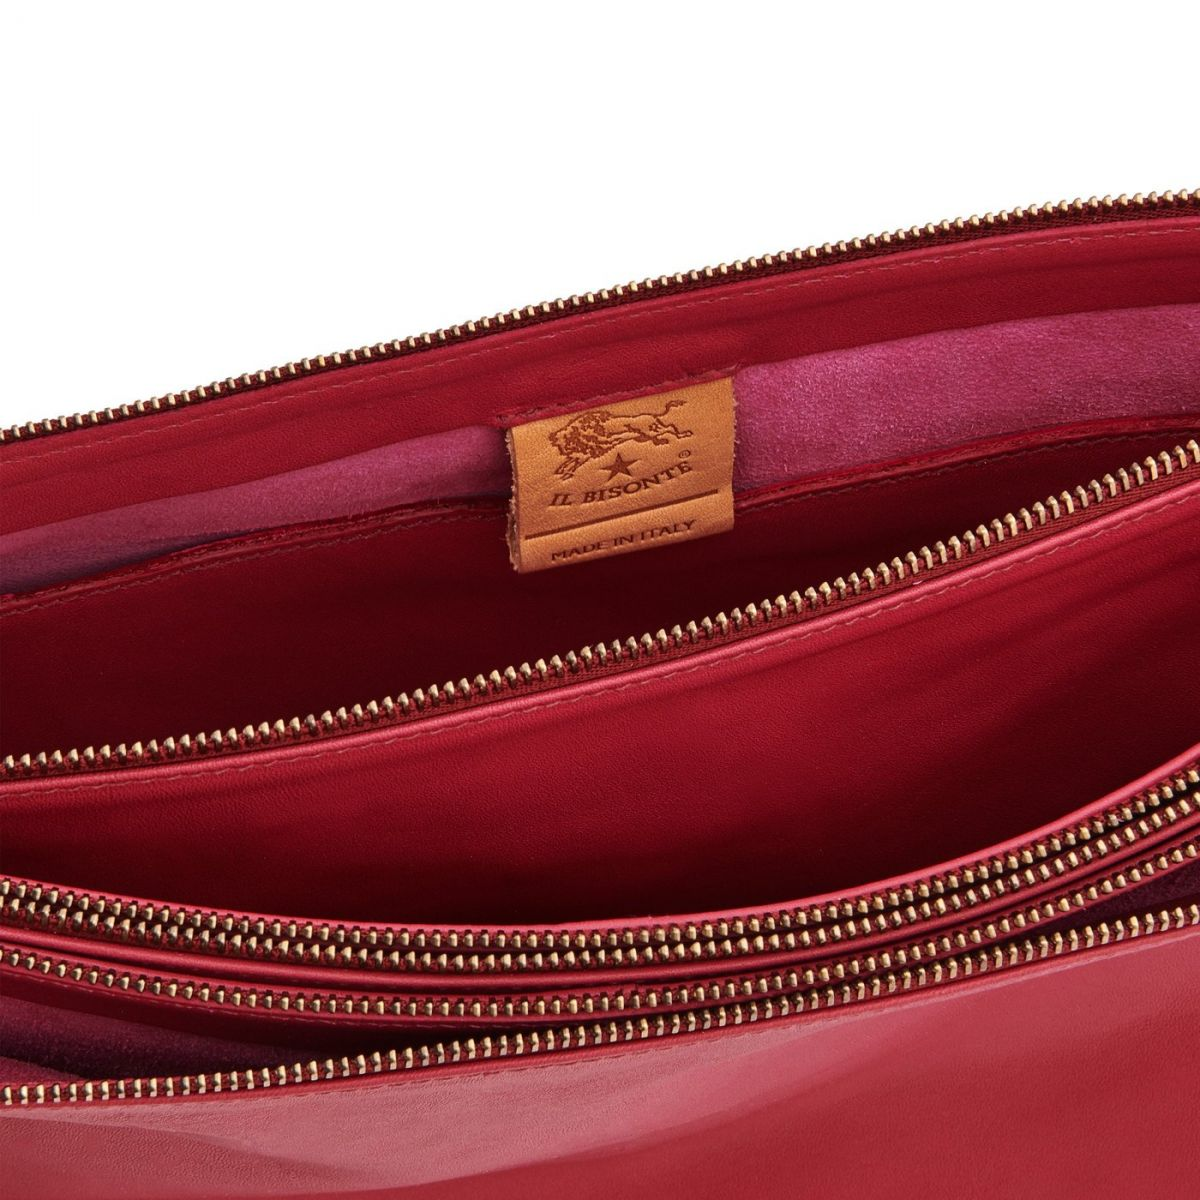 Women's Shoulder Bag  in Soft Cowhide Leather BSH094 color Sumac | Details